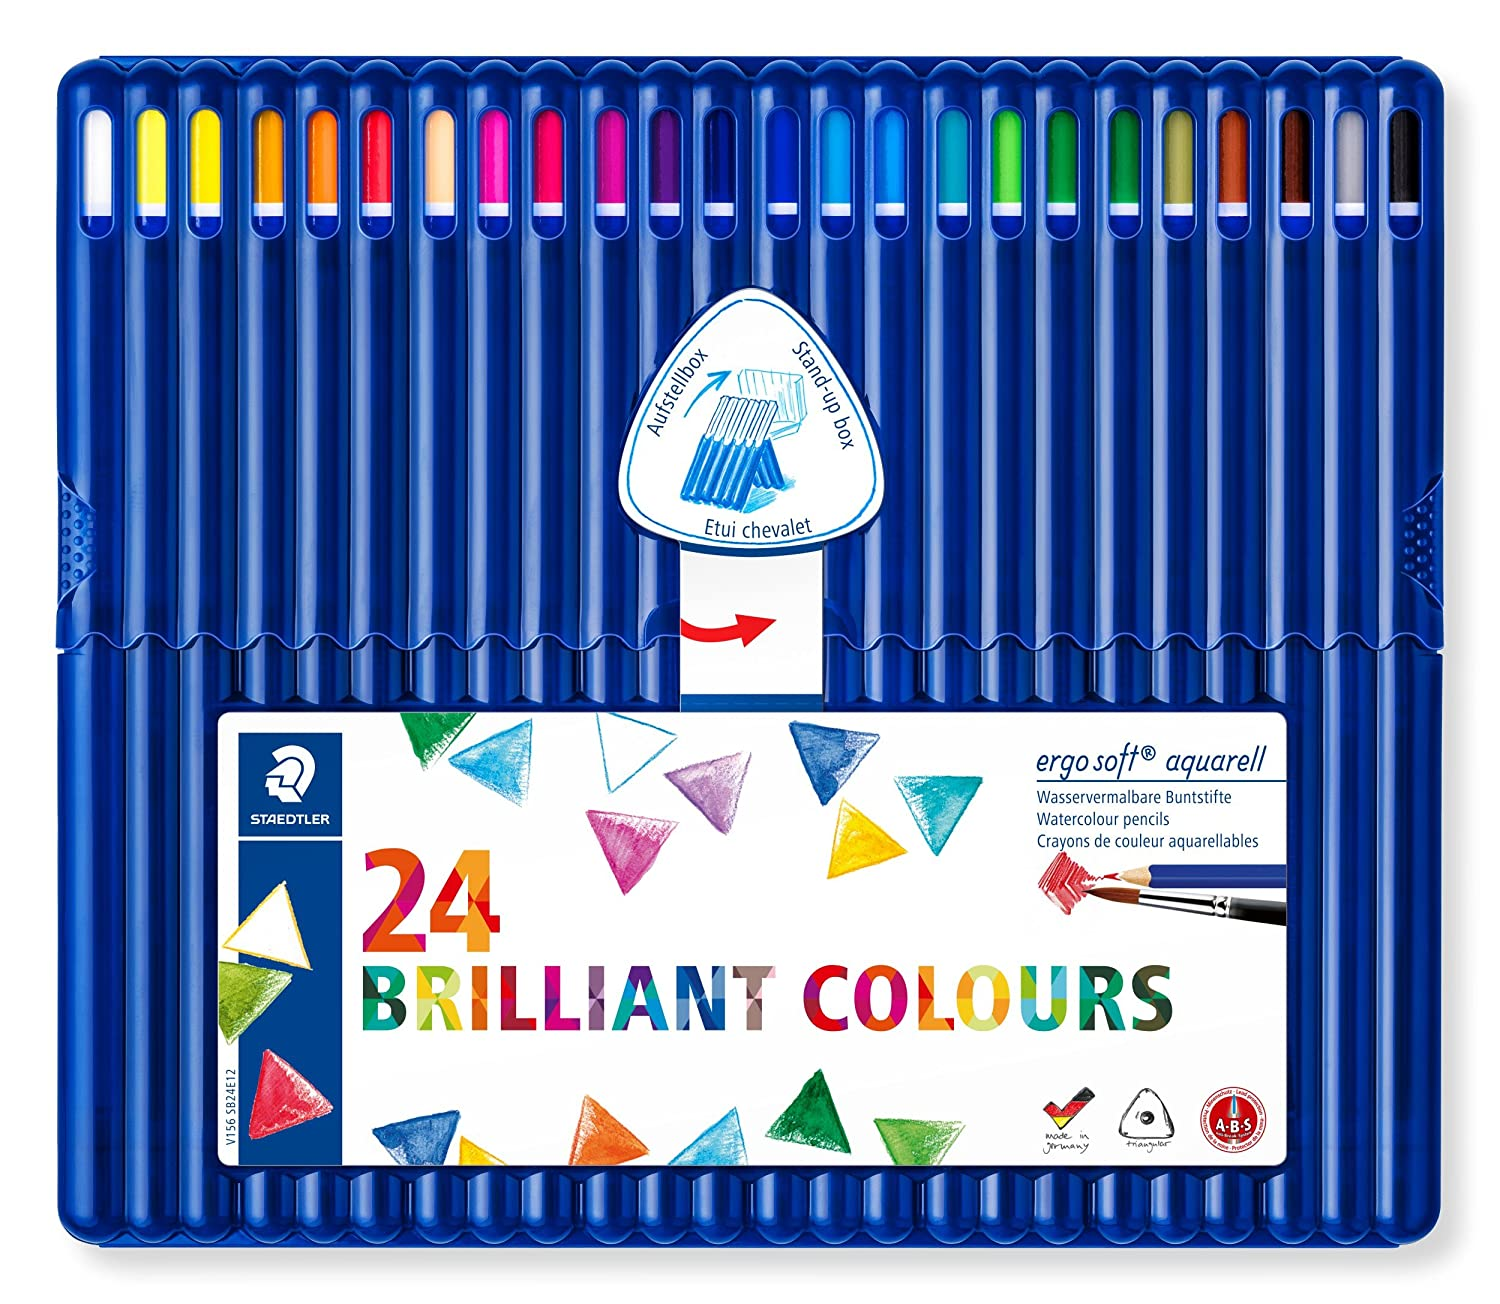 Staedtler Ergosoft Aquarell 156 SB24 Triangular Watercolour Pencil in Staedtler Box - Assorted Colou